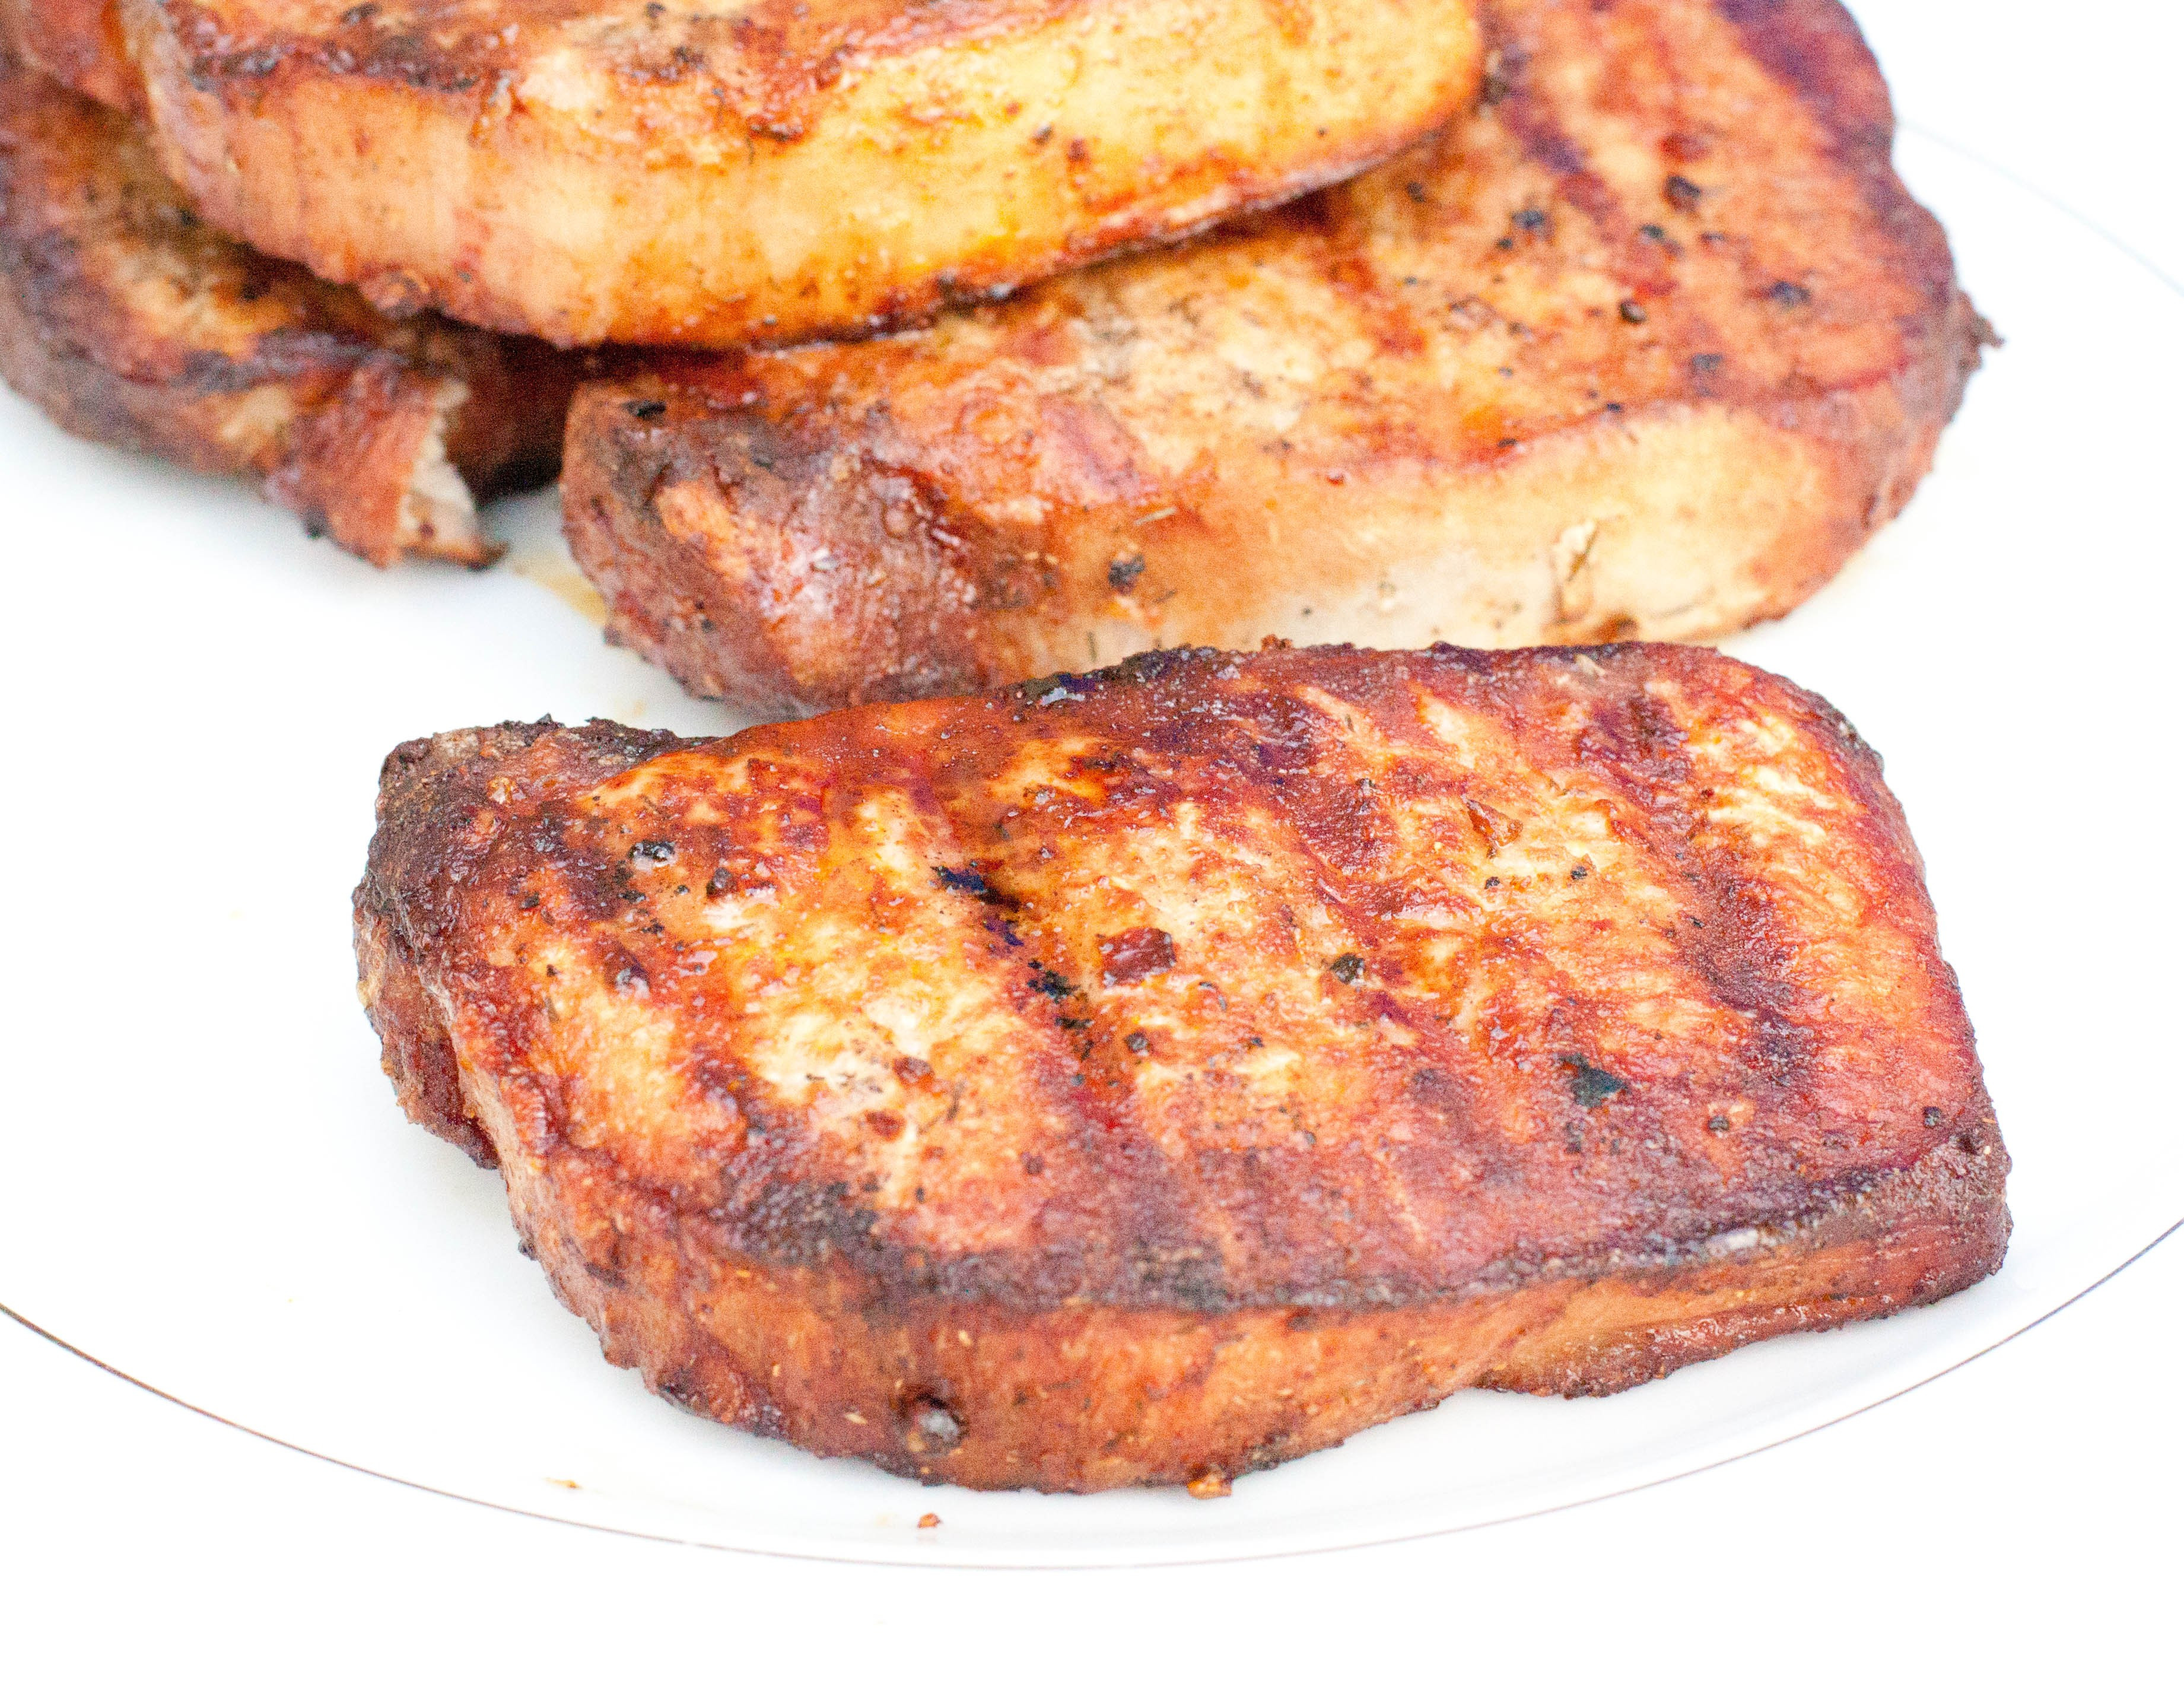 How To Grill Boneless Pork Chops  Grilled Boneless Pork Chops Served From Scratch